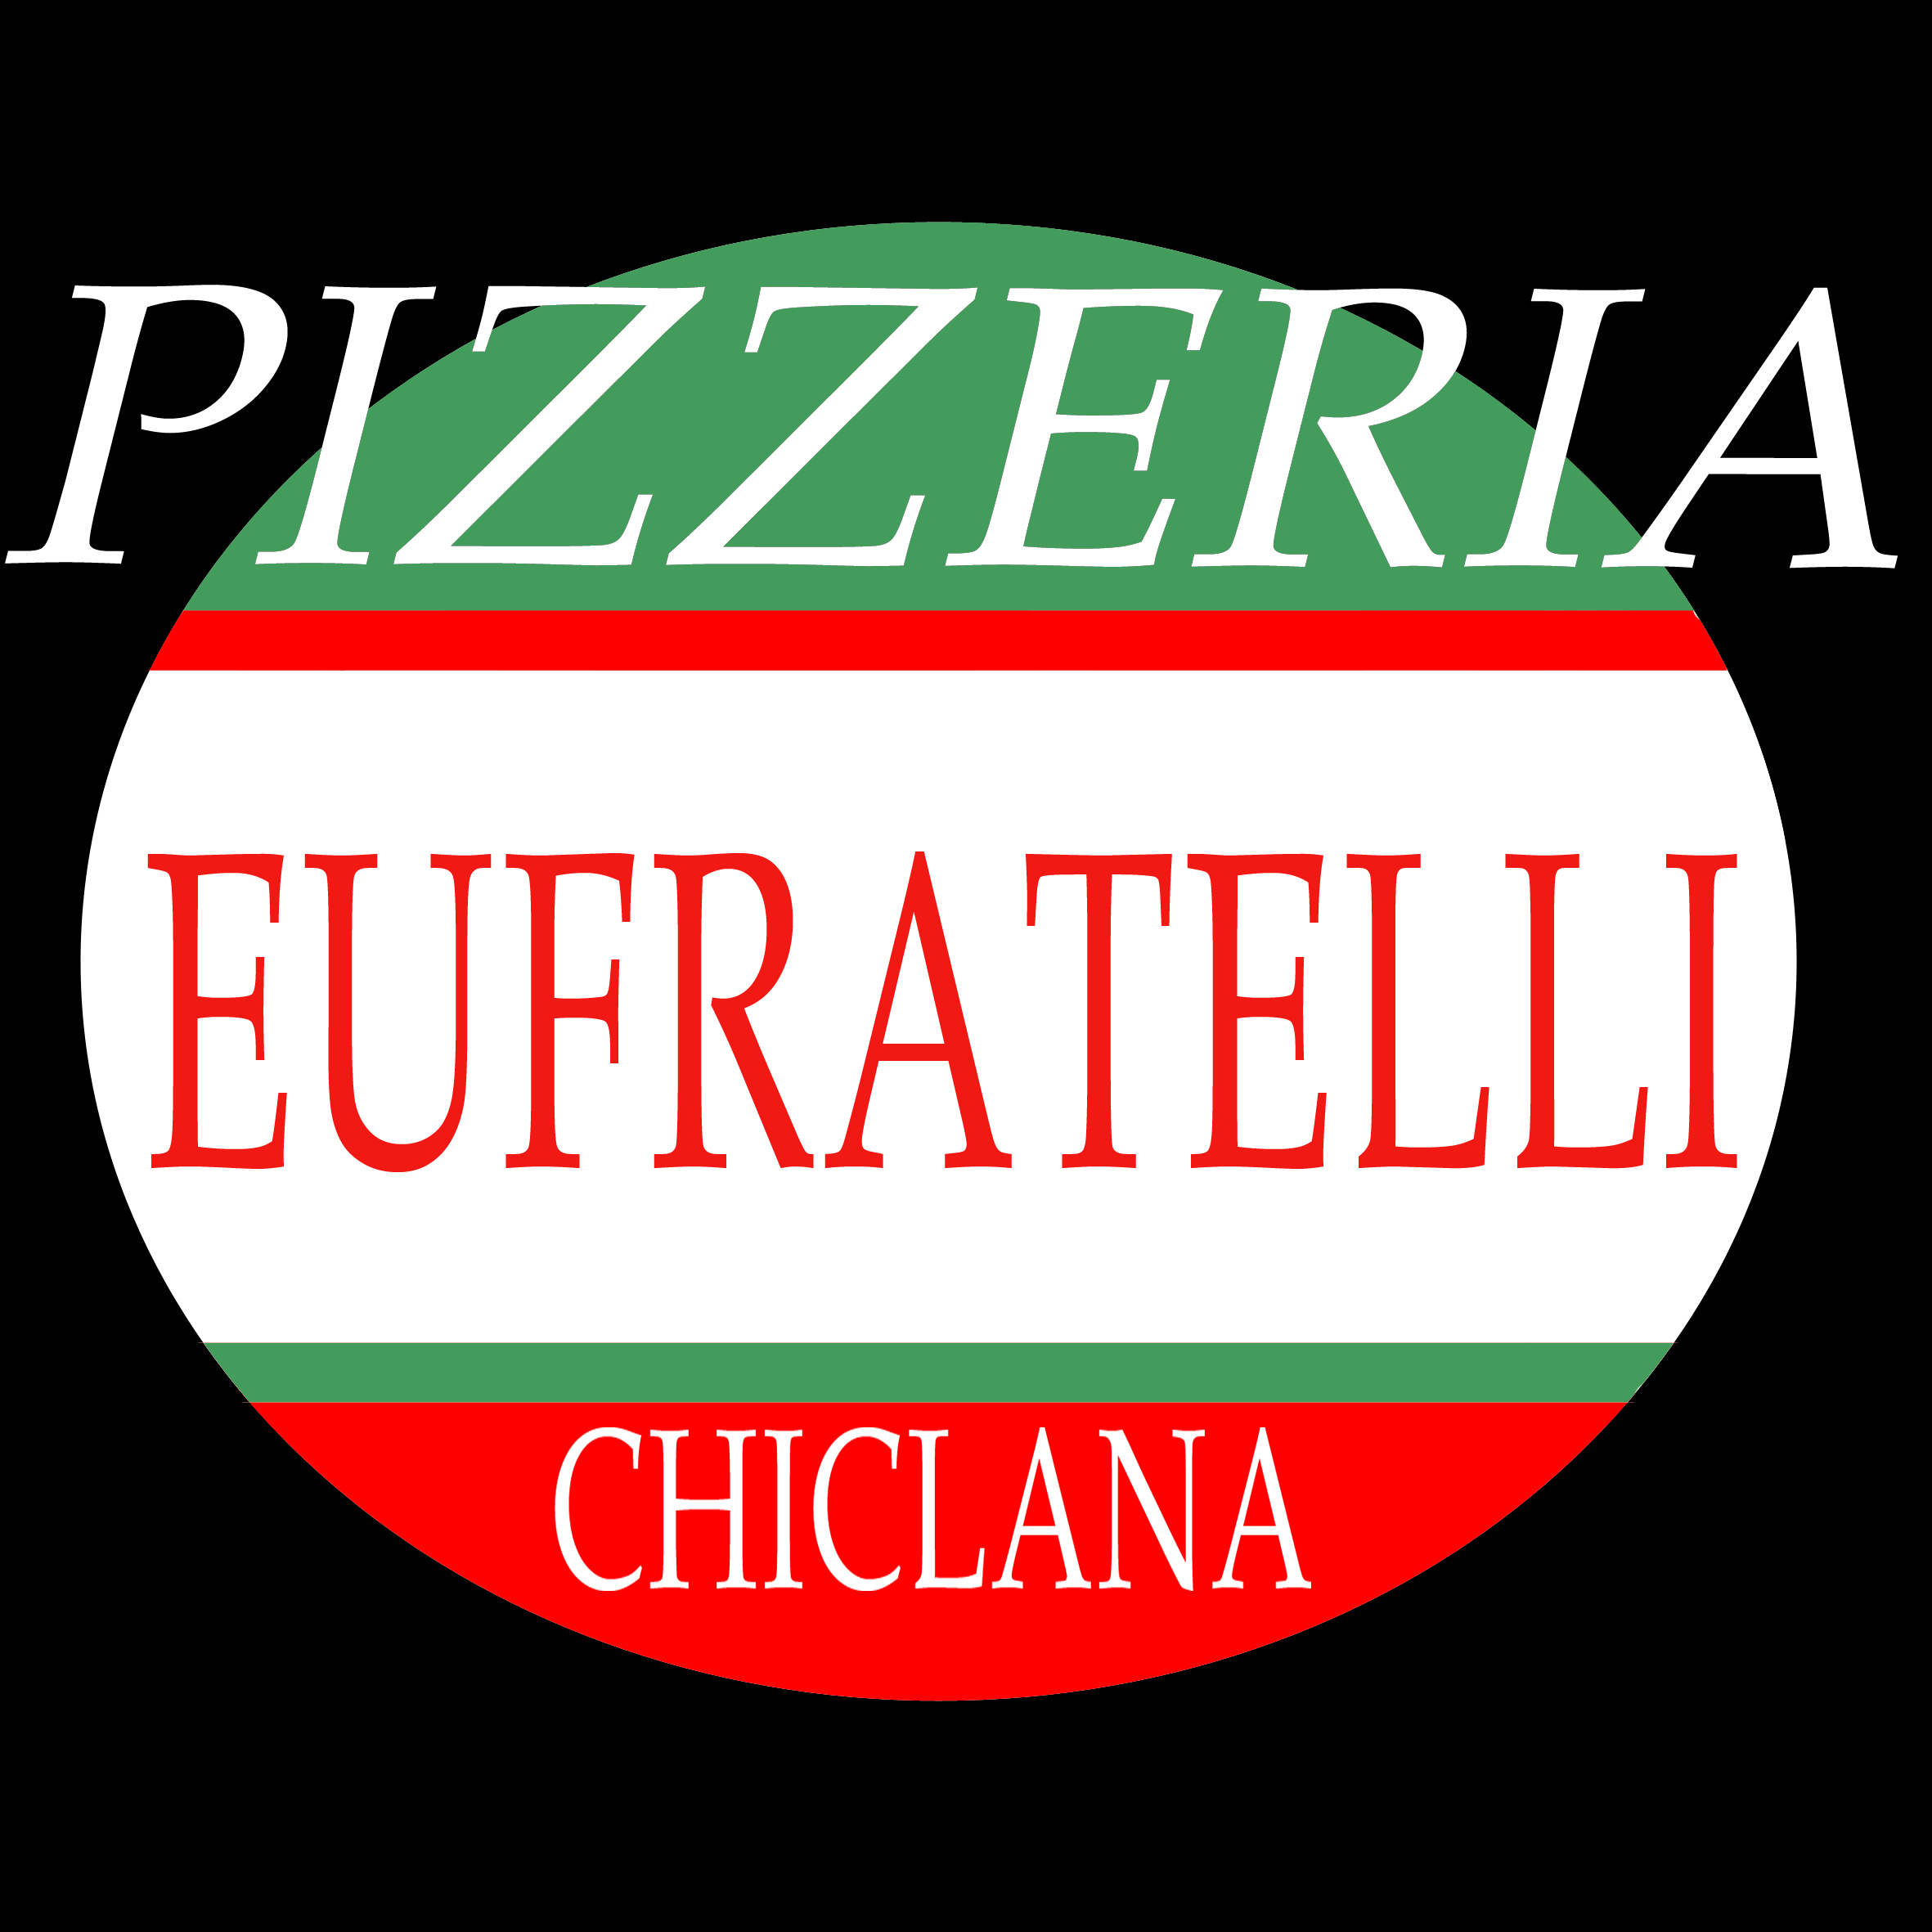 PIZZERIA EUFRATELLI